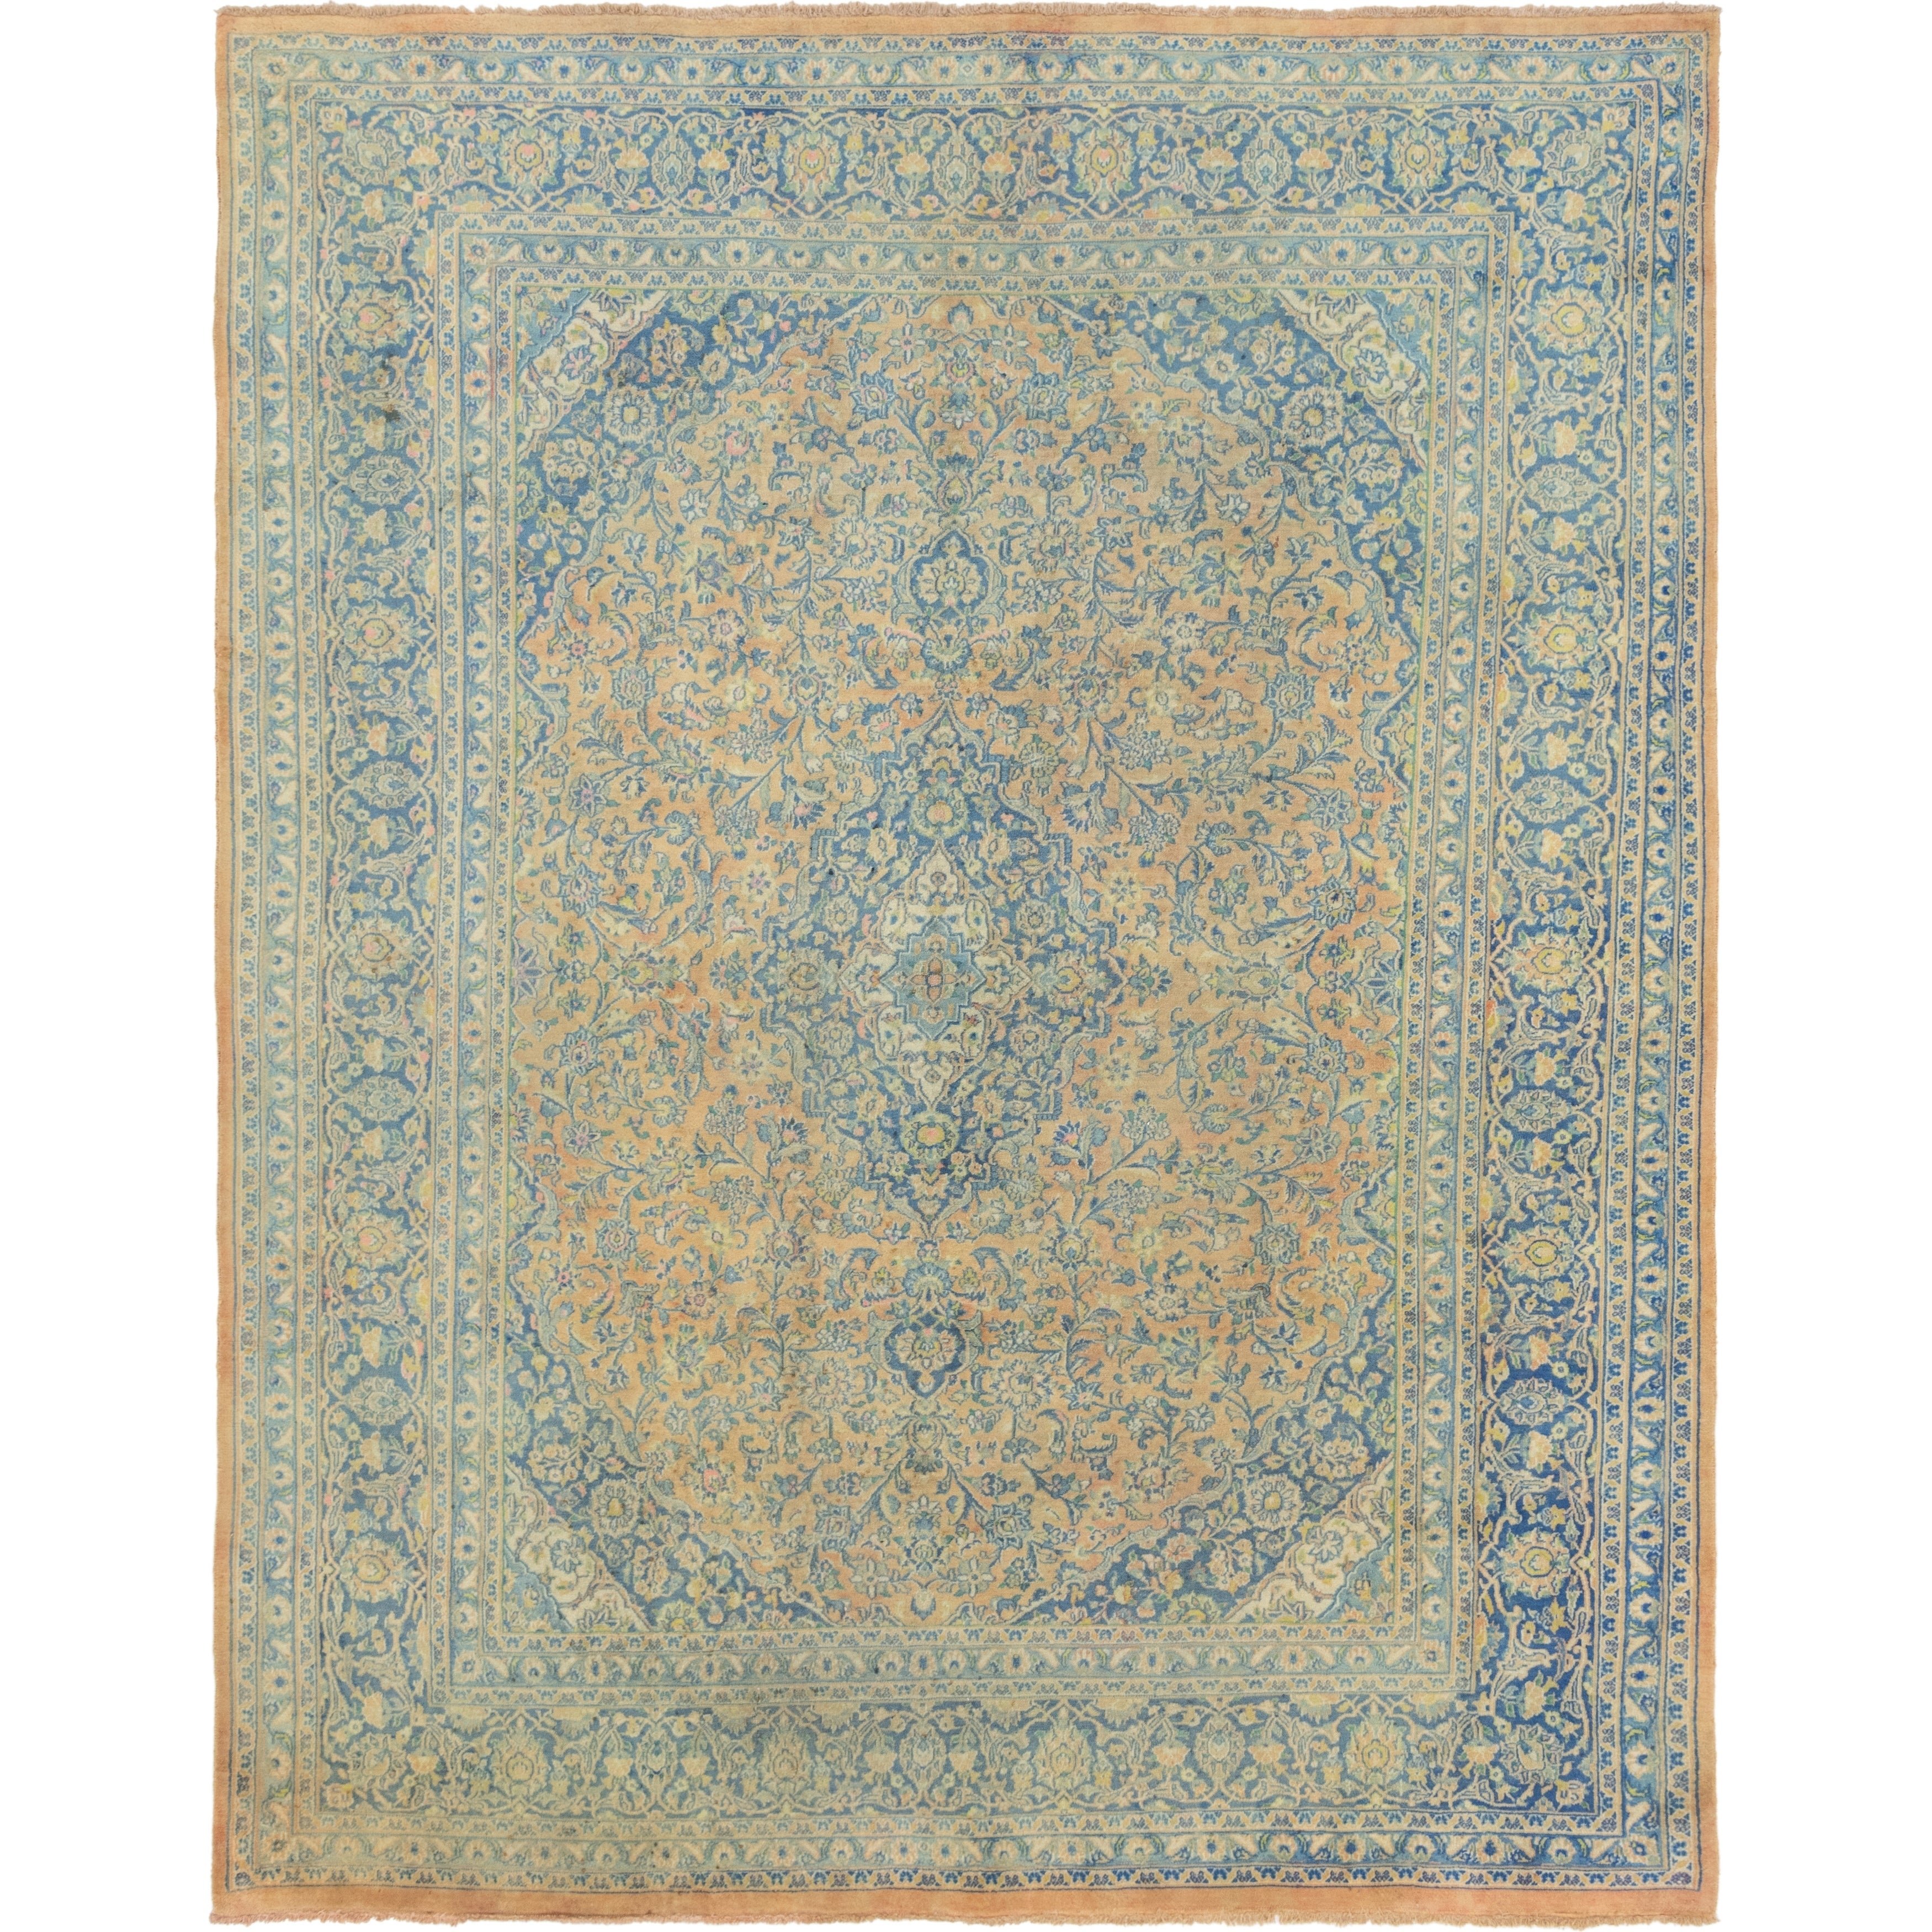 Hand Knotted Kashan Semi Antique Wool Area Rug - 9 6 x 12 (peach - 9 6 x 12)